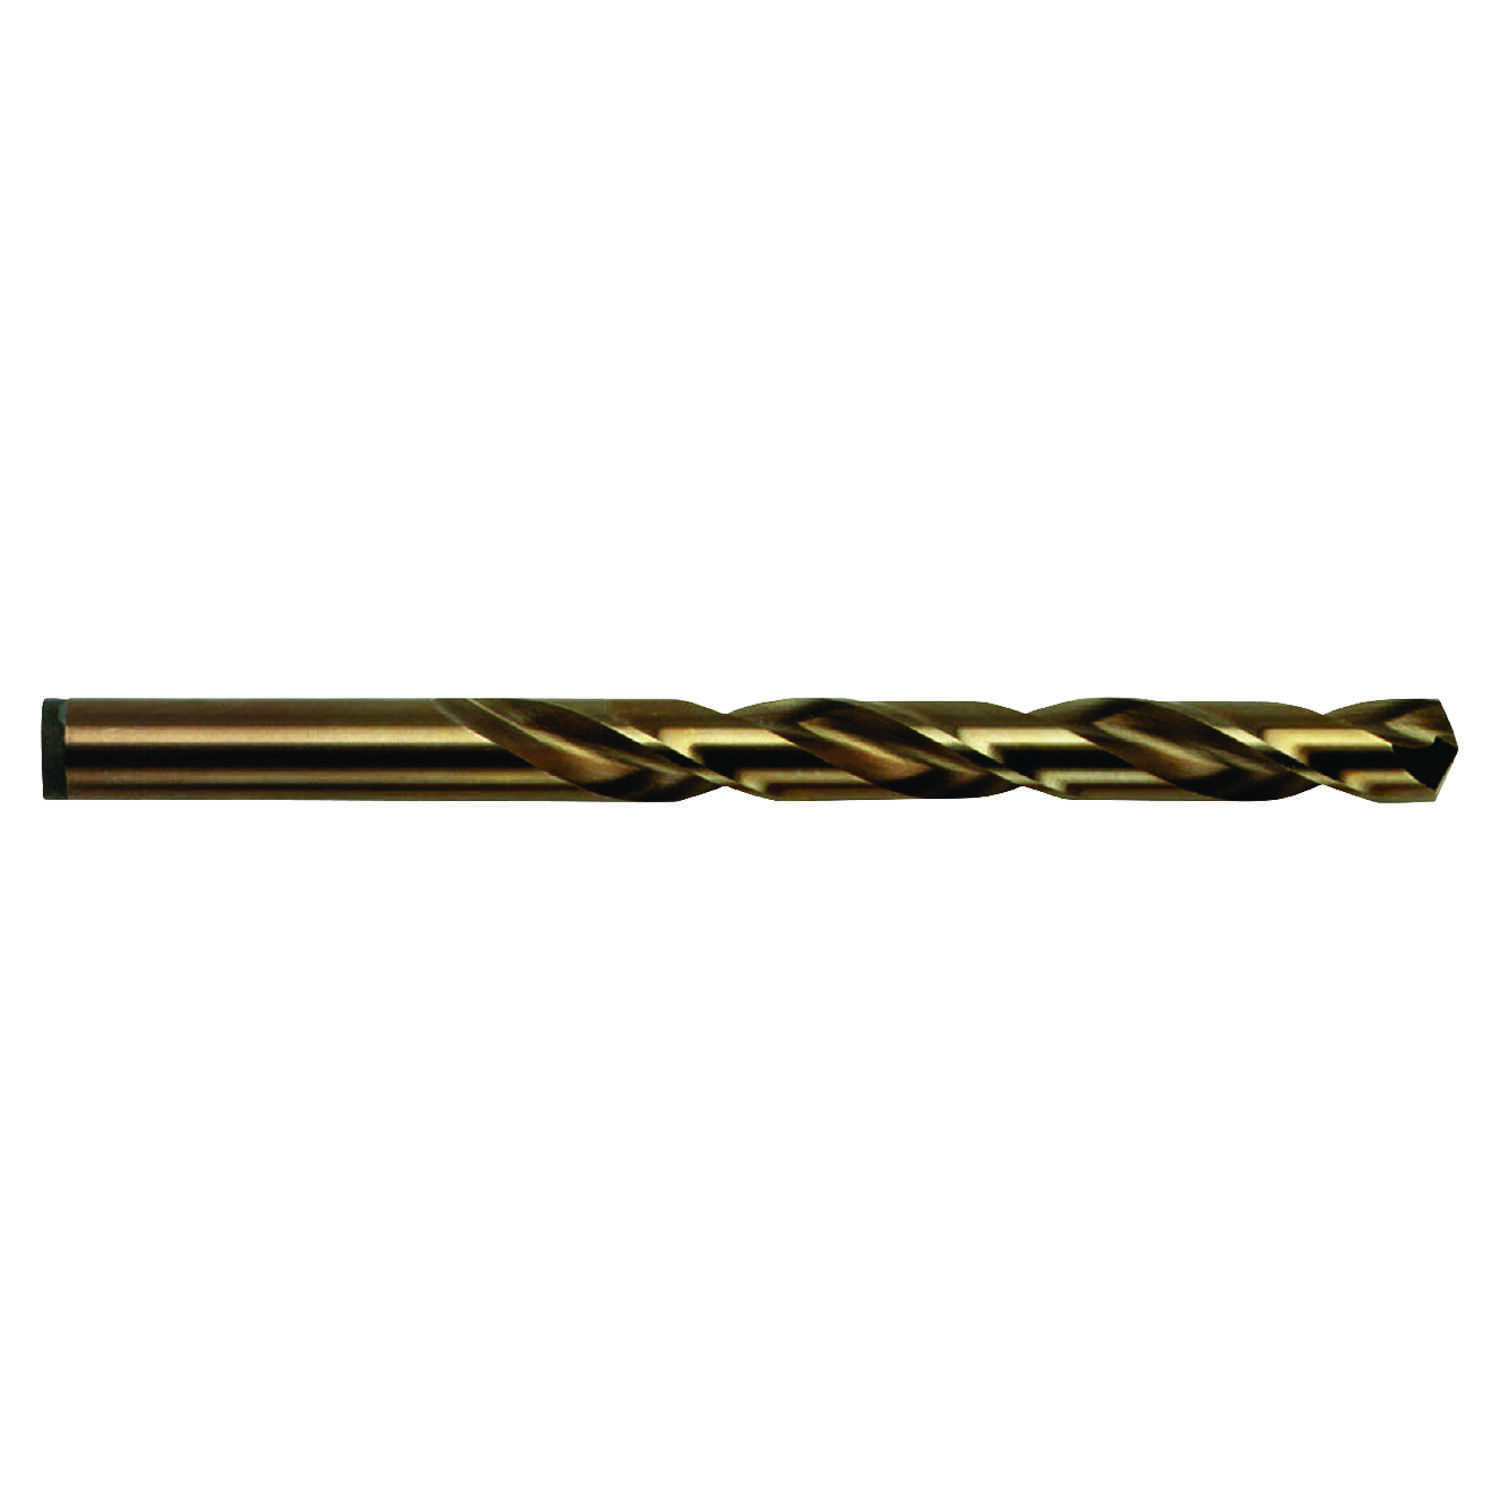 Irwin  Cobalt  19/64 in. Dia. x 4-3/8 in. L High Speed Steel  Drill Bit  Straight Shank  1 pc.